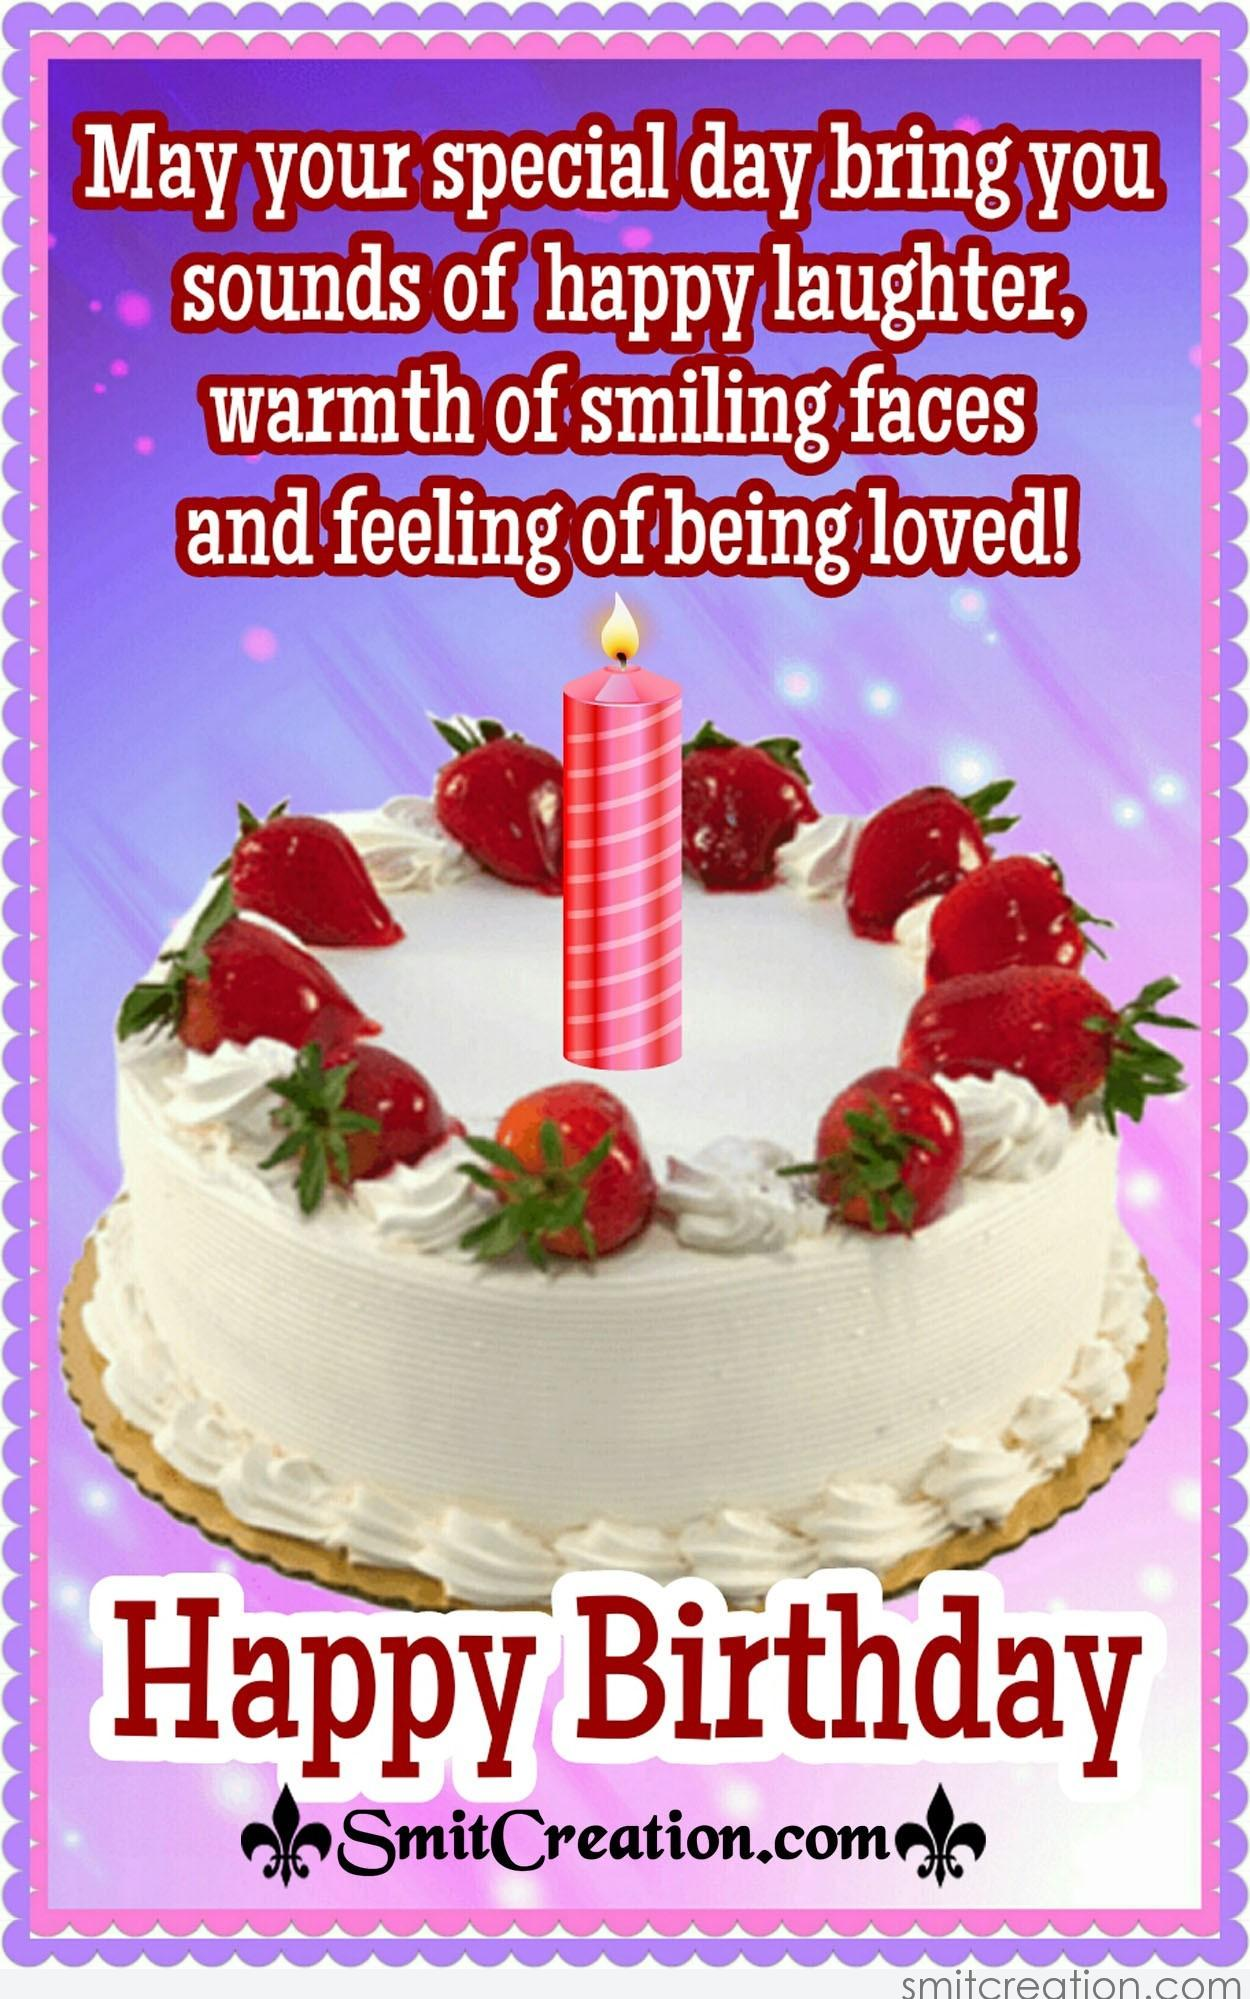 Birthday Wishes For Cousin Pictures And Graphics